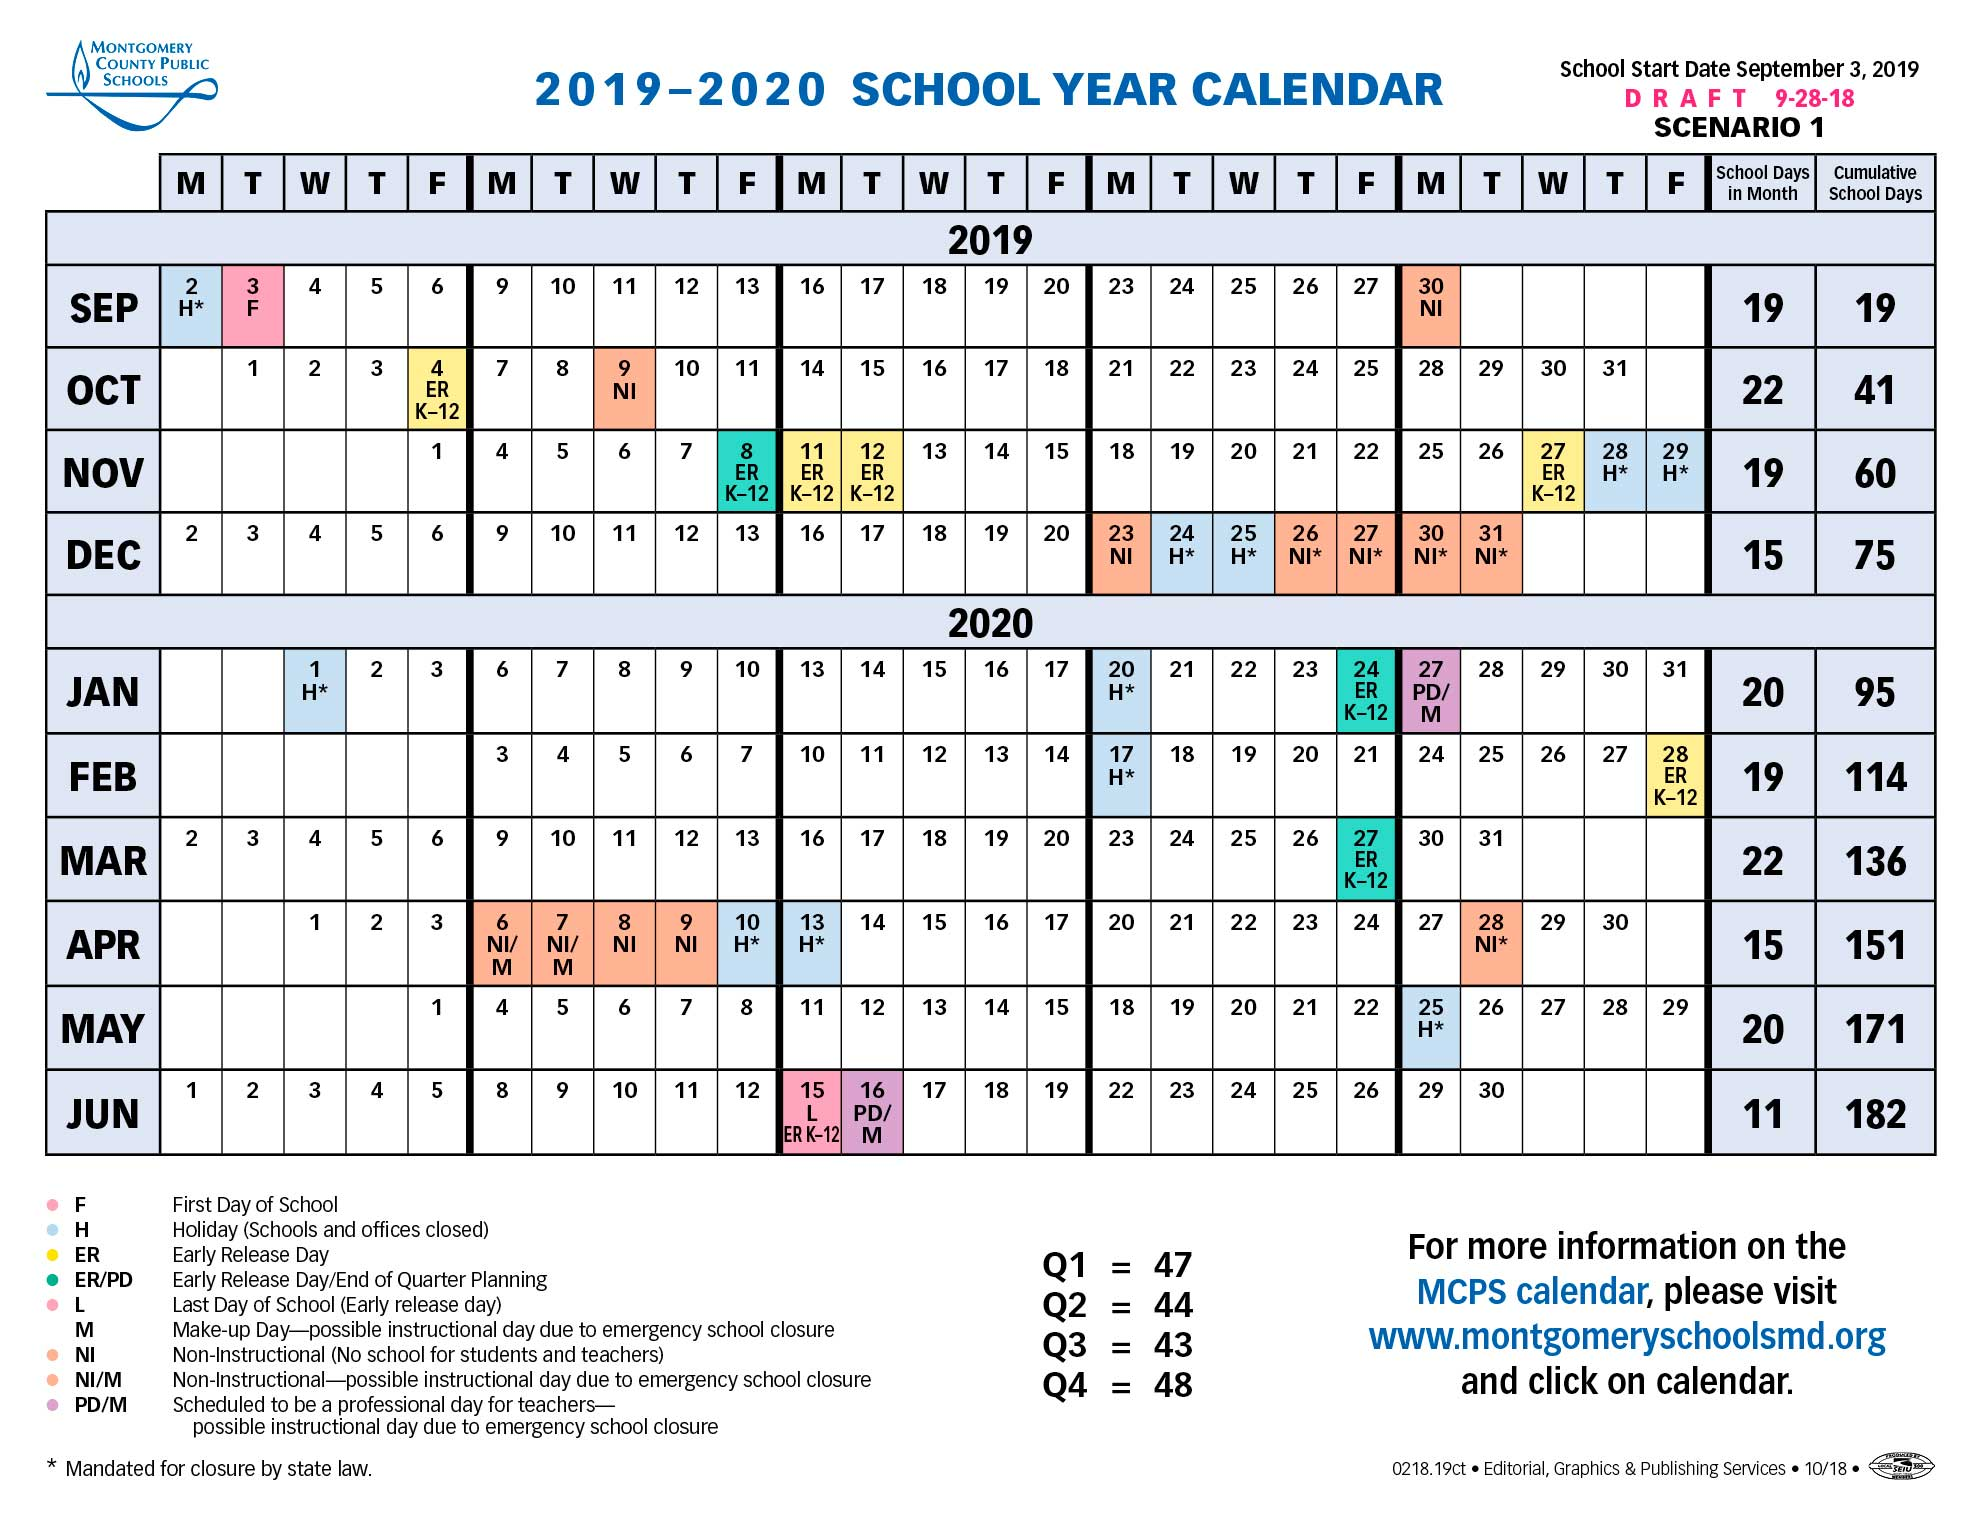 Spring Break 2019 Calendar School Board Approves Longer Spring Break for 2019 2020 Calendar